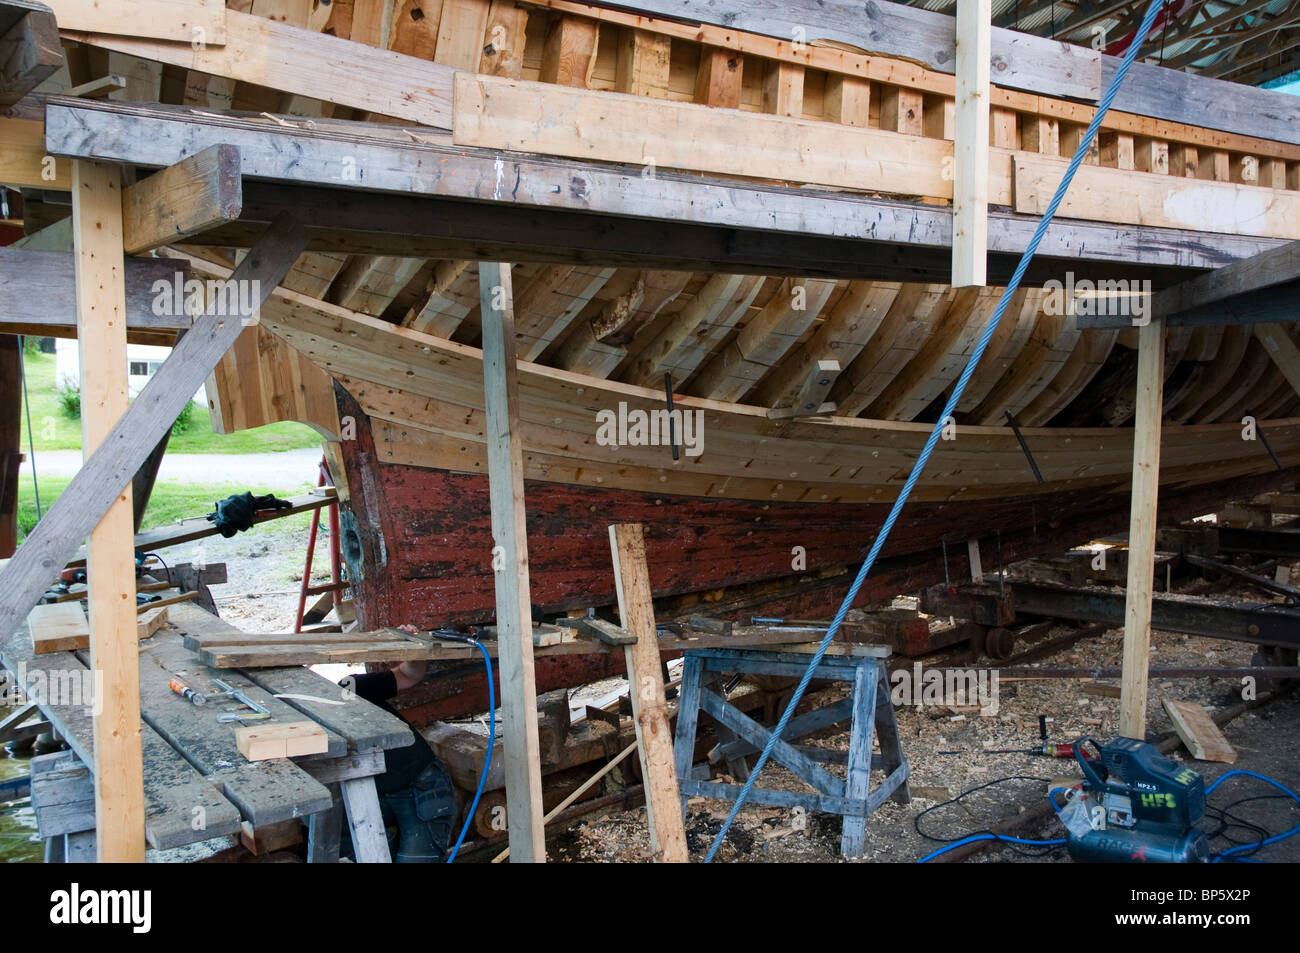 A Large Wooden Boat Being Restored Using Traditional Woodworking